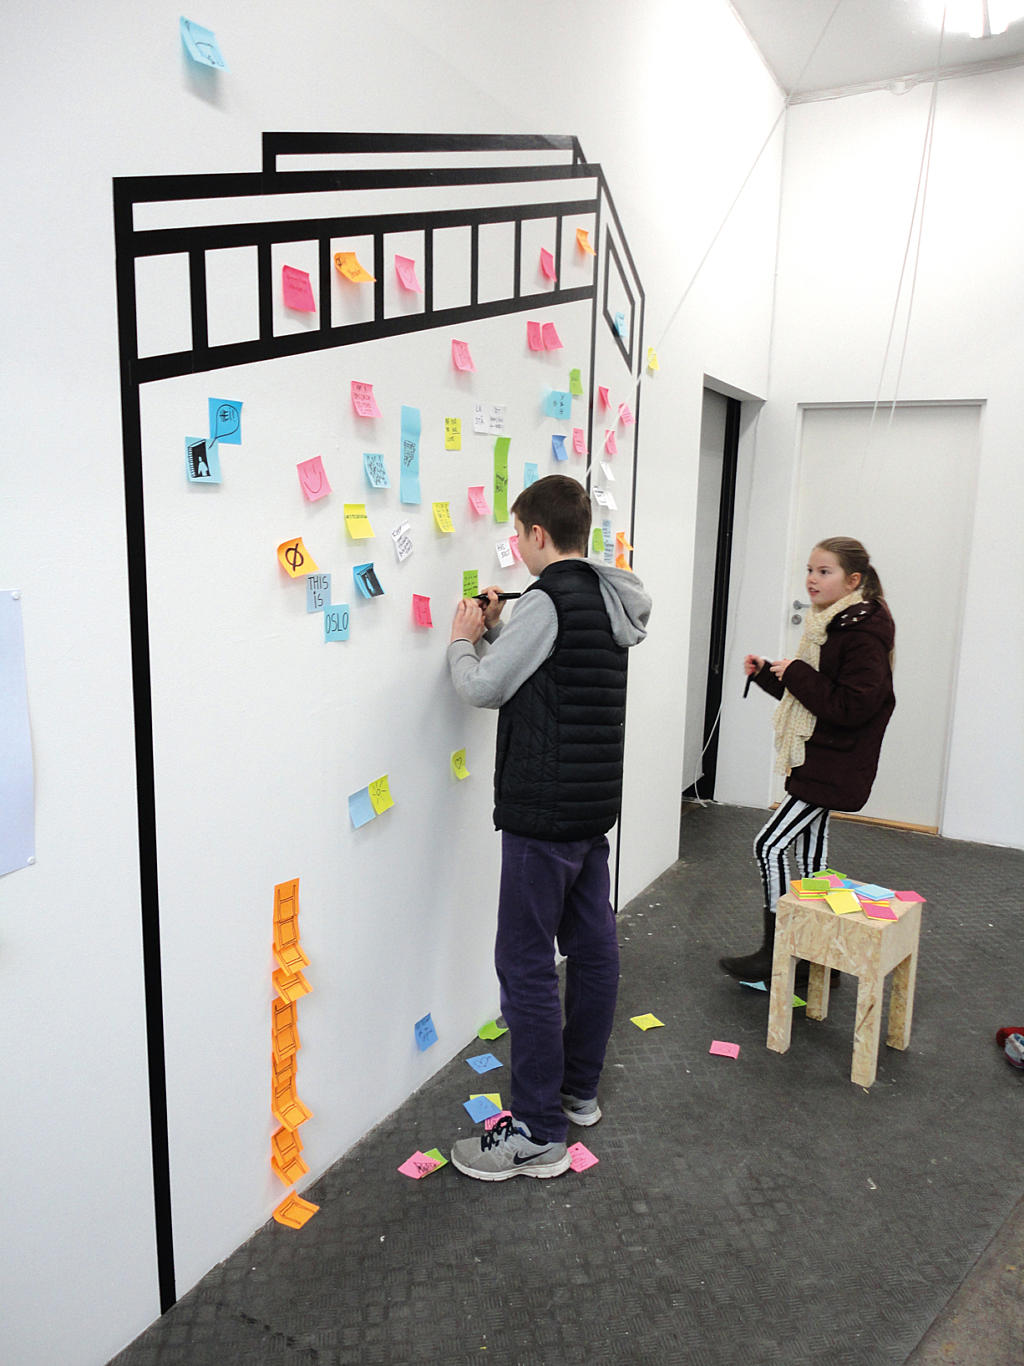 From the opening night to the last day of the exhibition, visitors of all ages made notes of their comments and wishes in text and in drawings. A catalogue of ideas for the Høyblokka, the government quarter and the city.